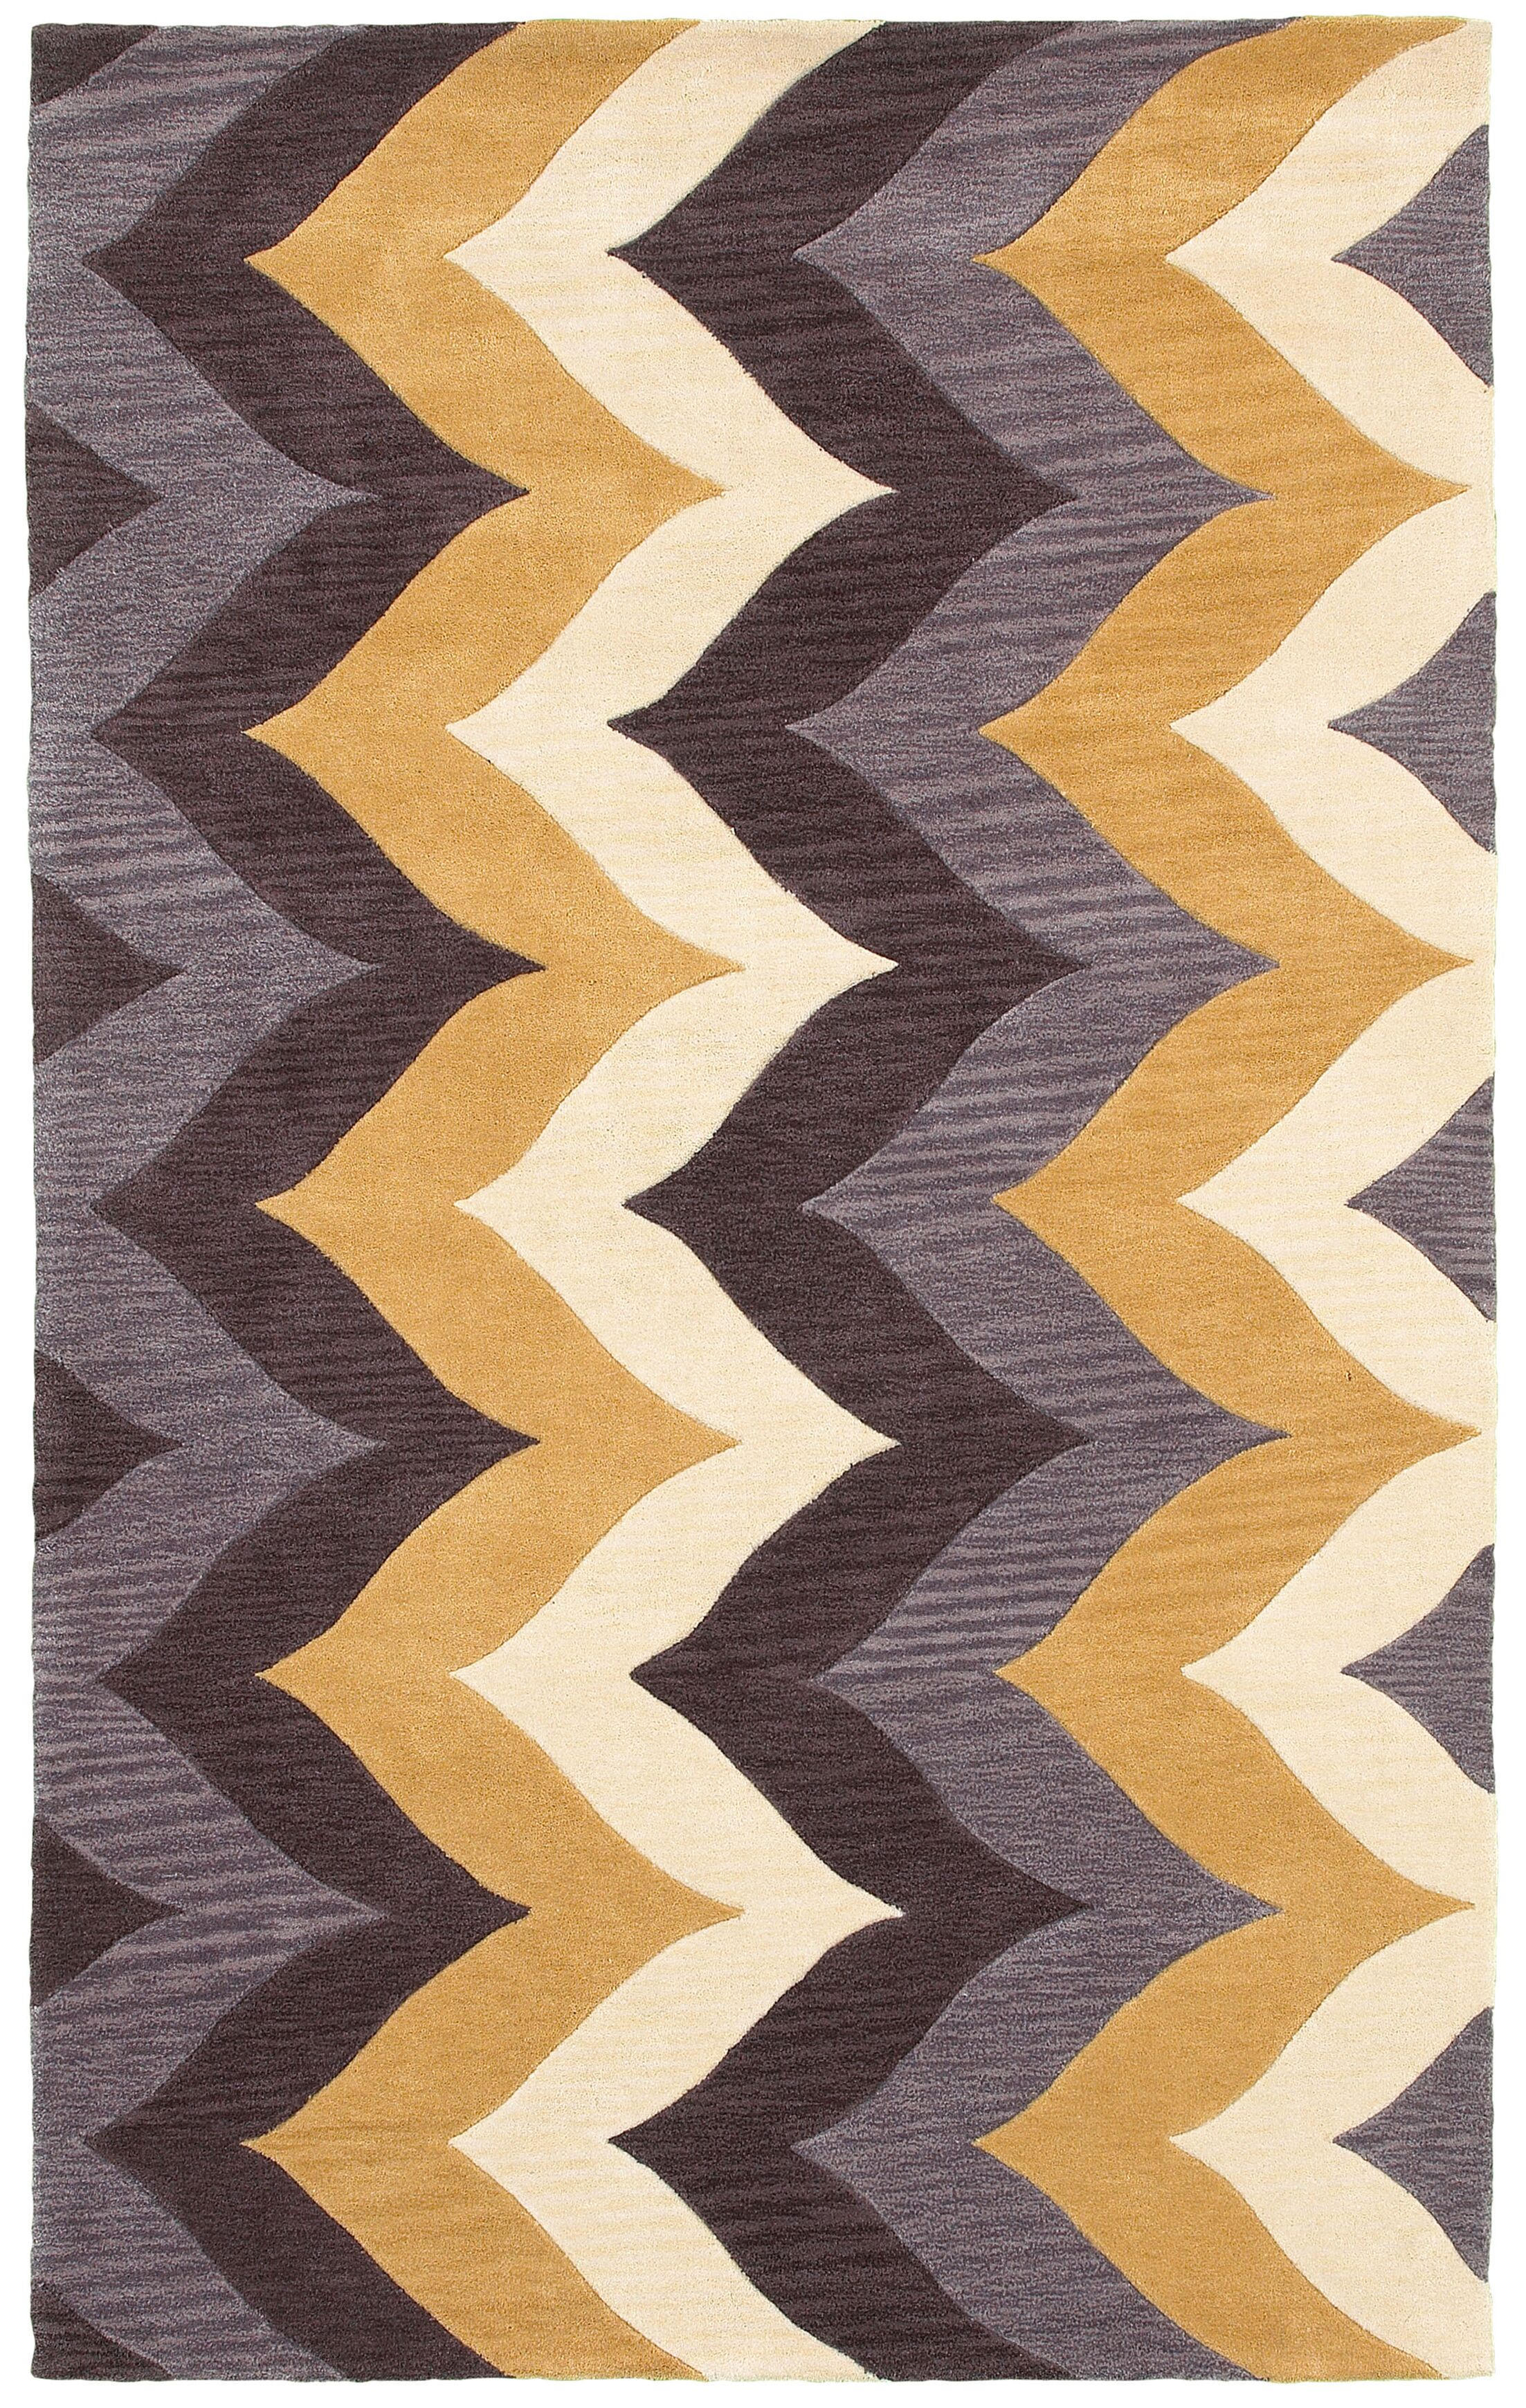 Hand-Tufted Brown/Gold Area Rug Rug Size: Rectangle 3' x 5'